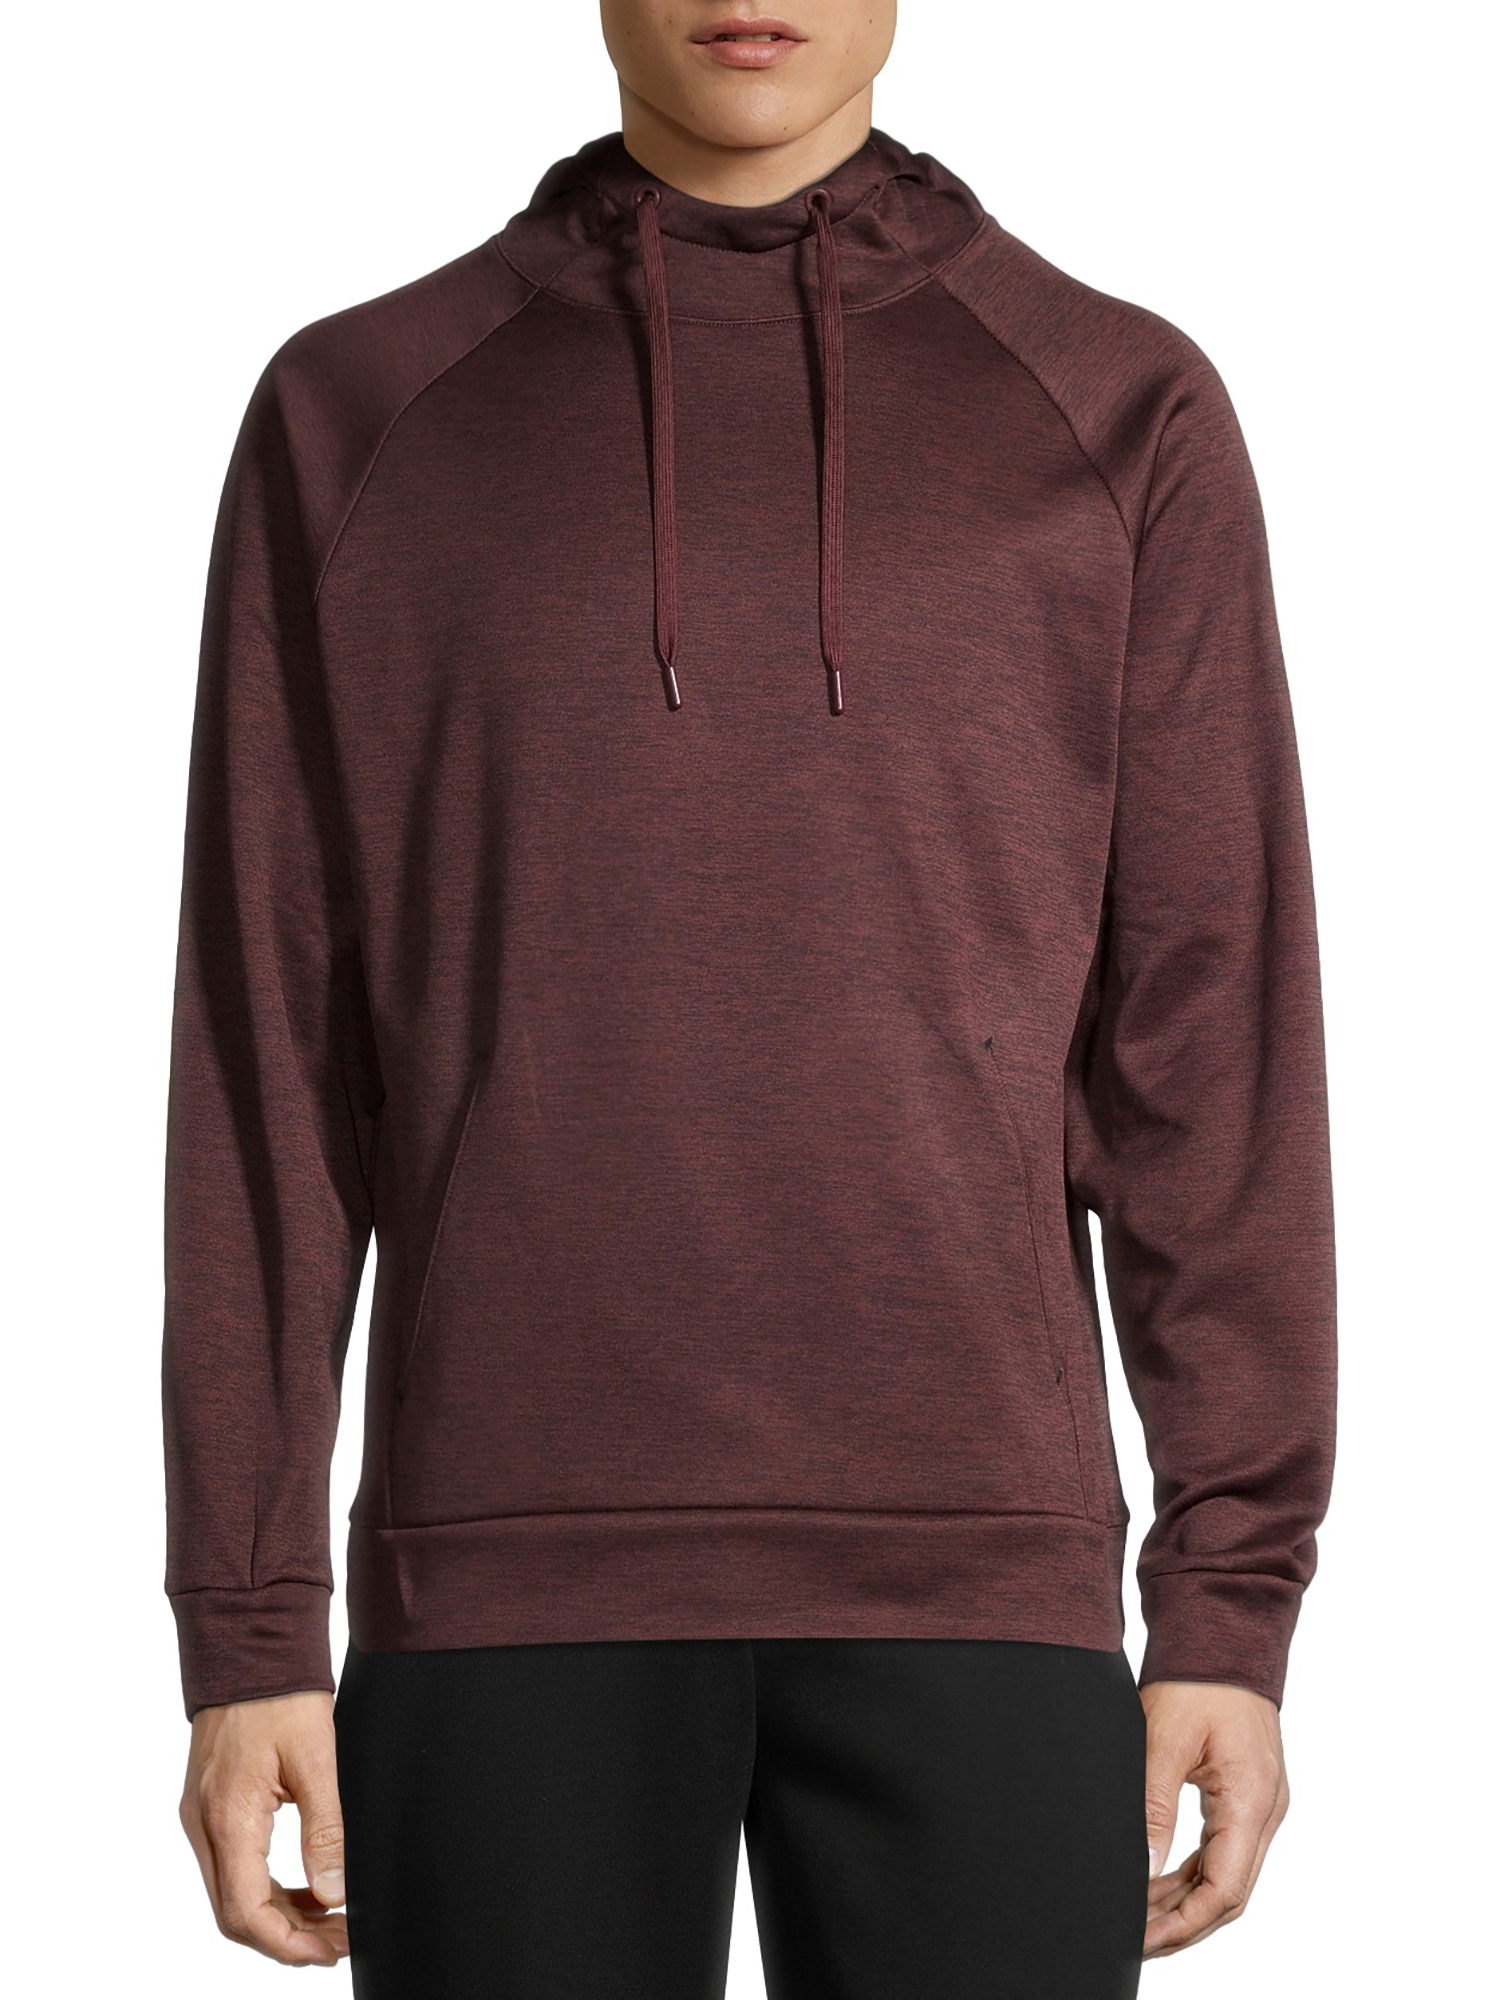 Russell Men's Active Tech Fleece Pullover Hoodie Red Size (L/G 42-44)